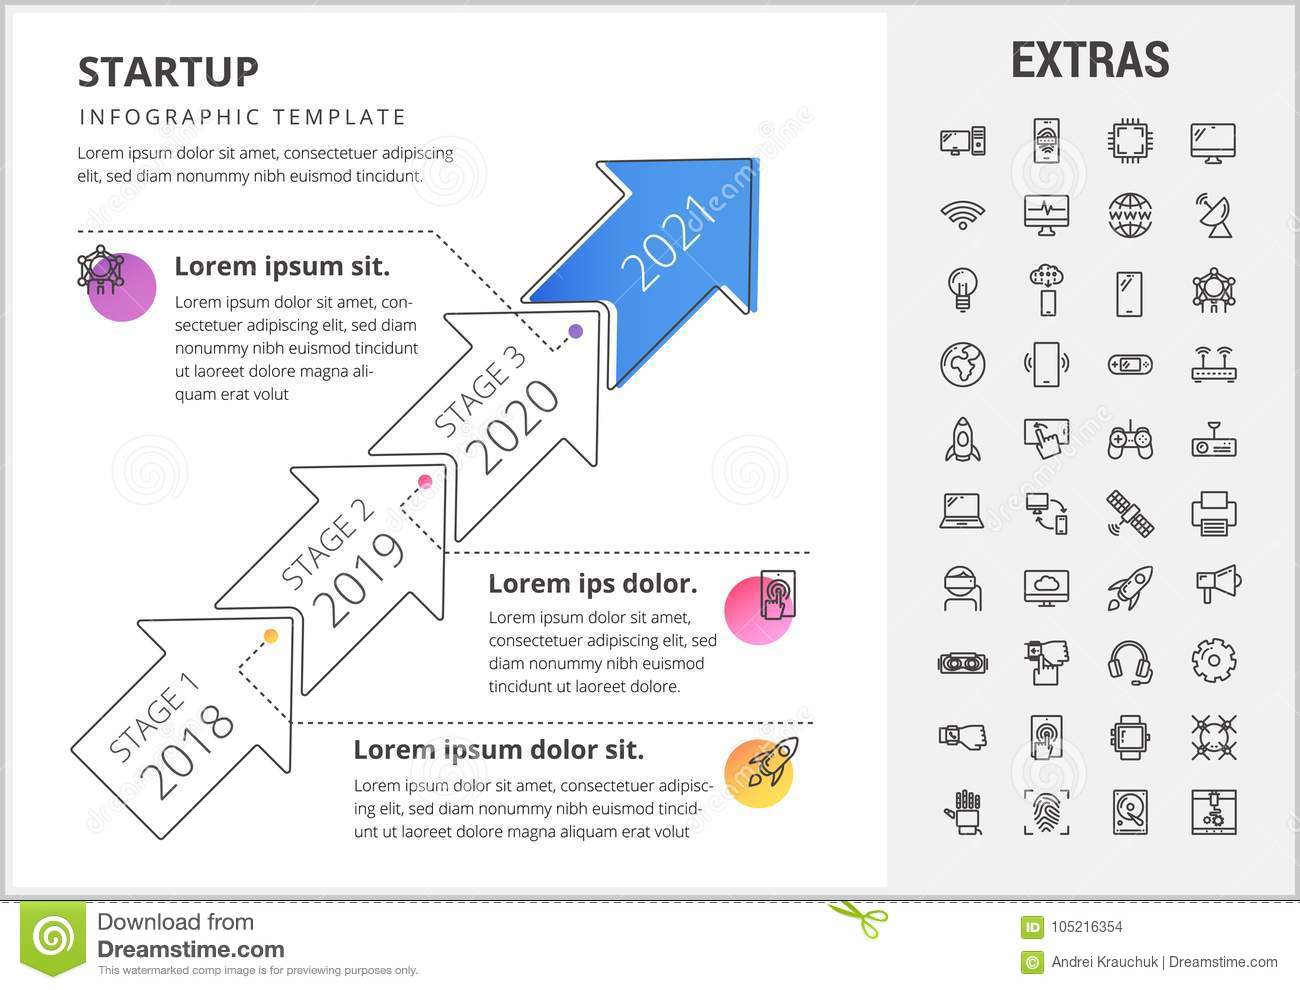 Startup Infographic Template, Elements And Icons  Stock